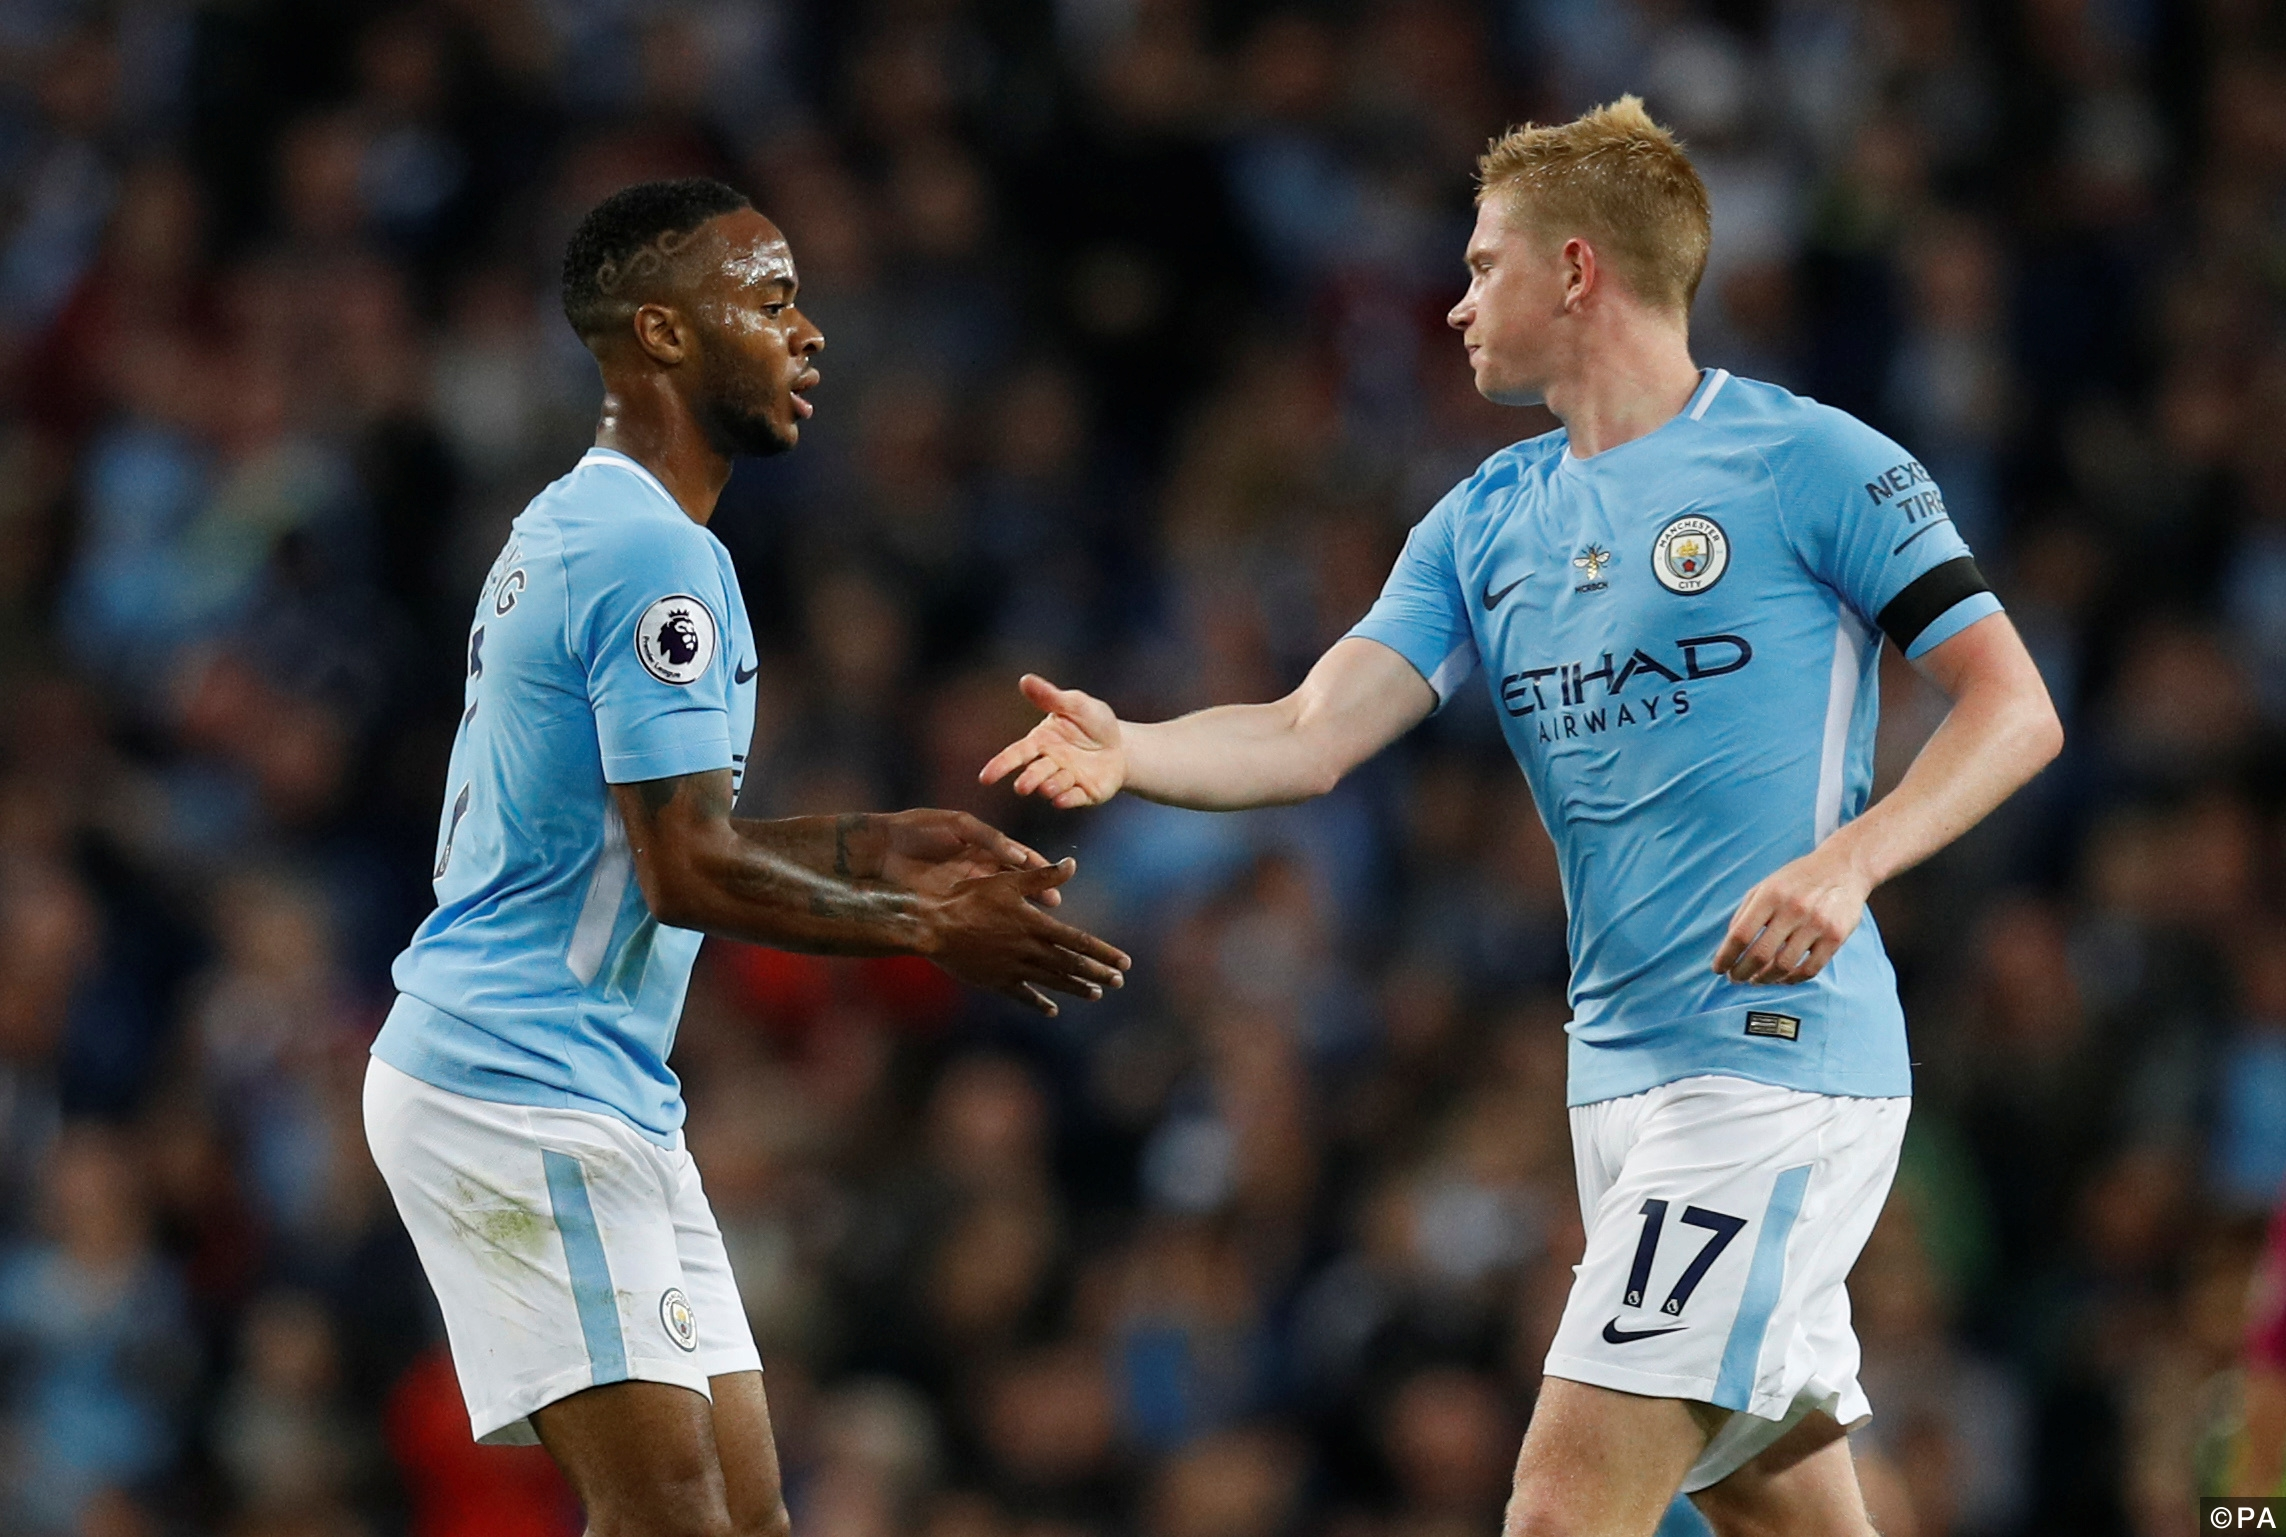 Bournemouth vs Manchester City predictions, betting tips and match previews